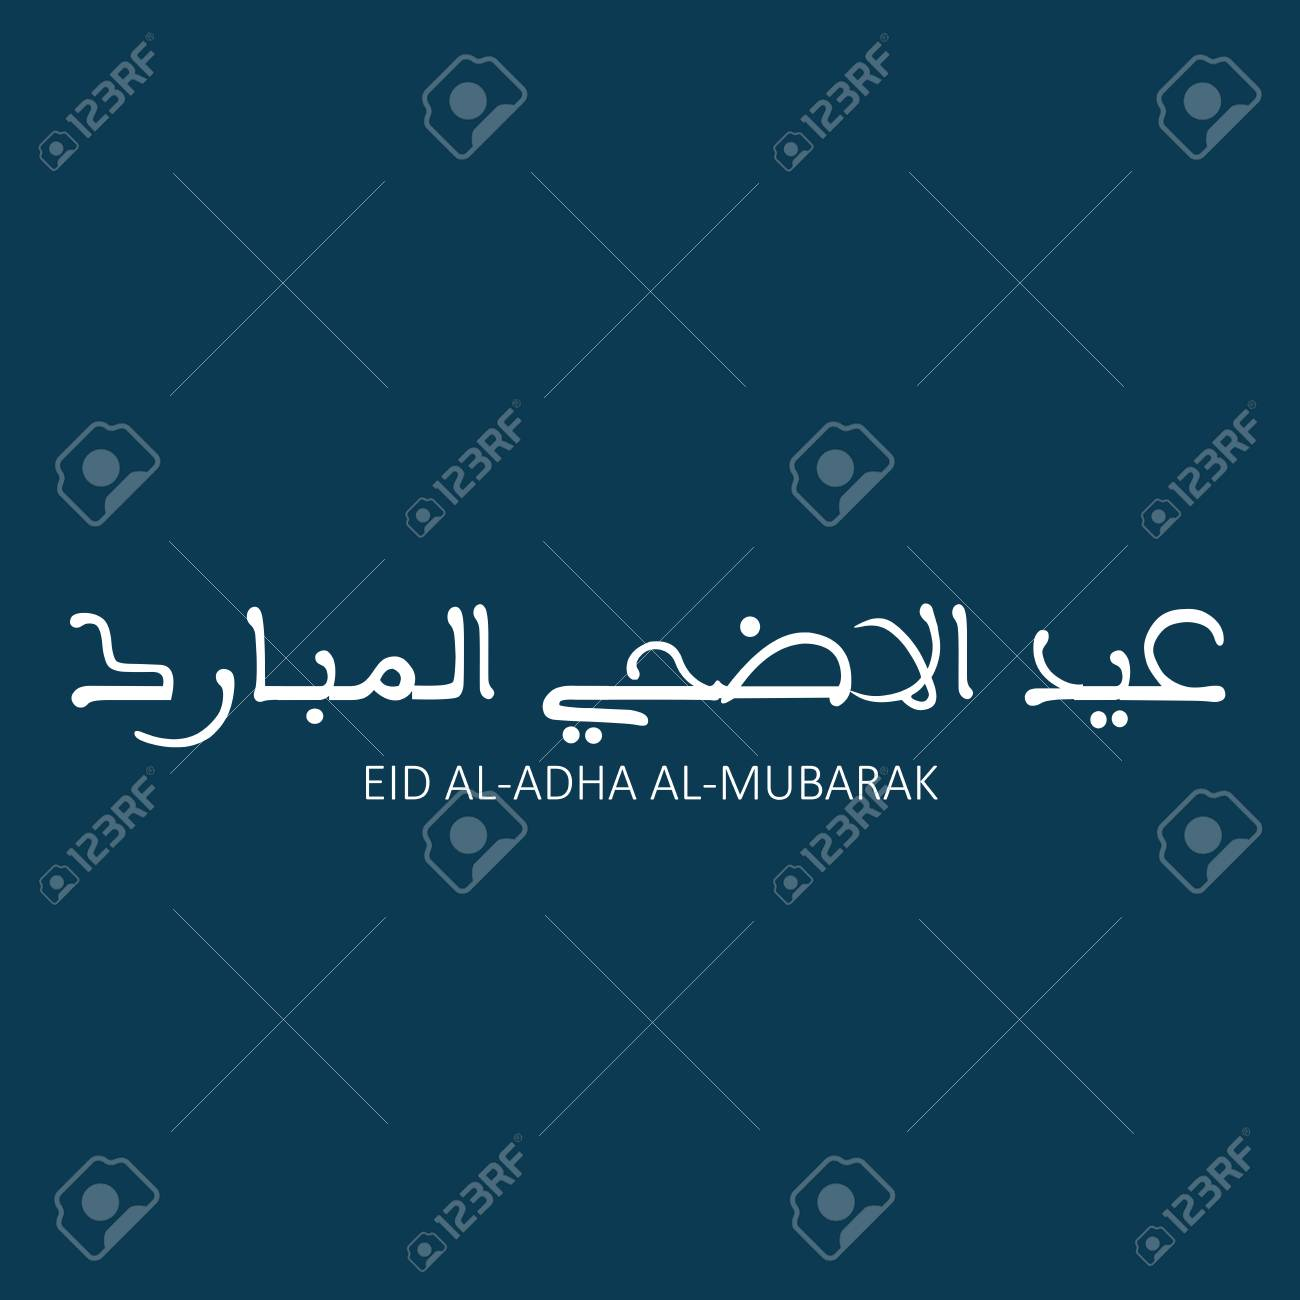 Arabic Calligraphy Of An Eid Greeting Happy Eid Al Adha Eid